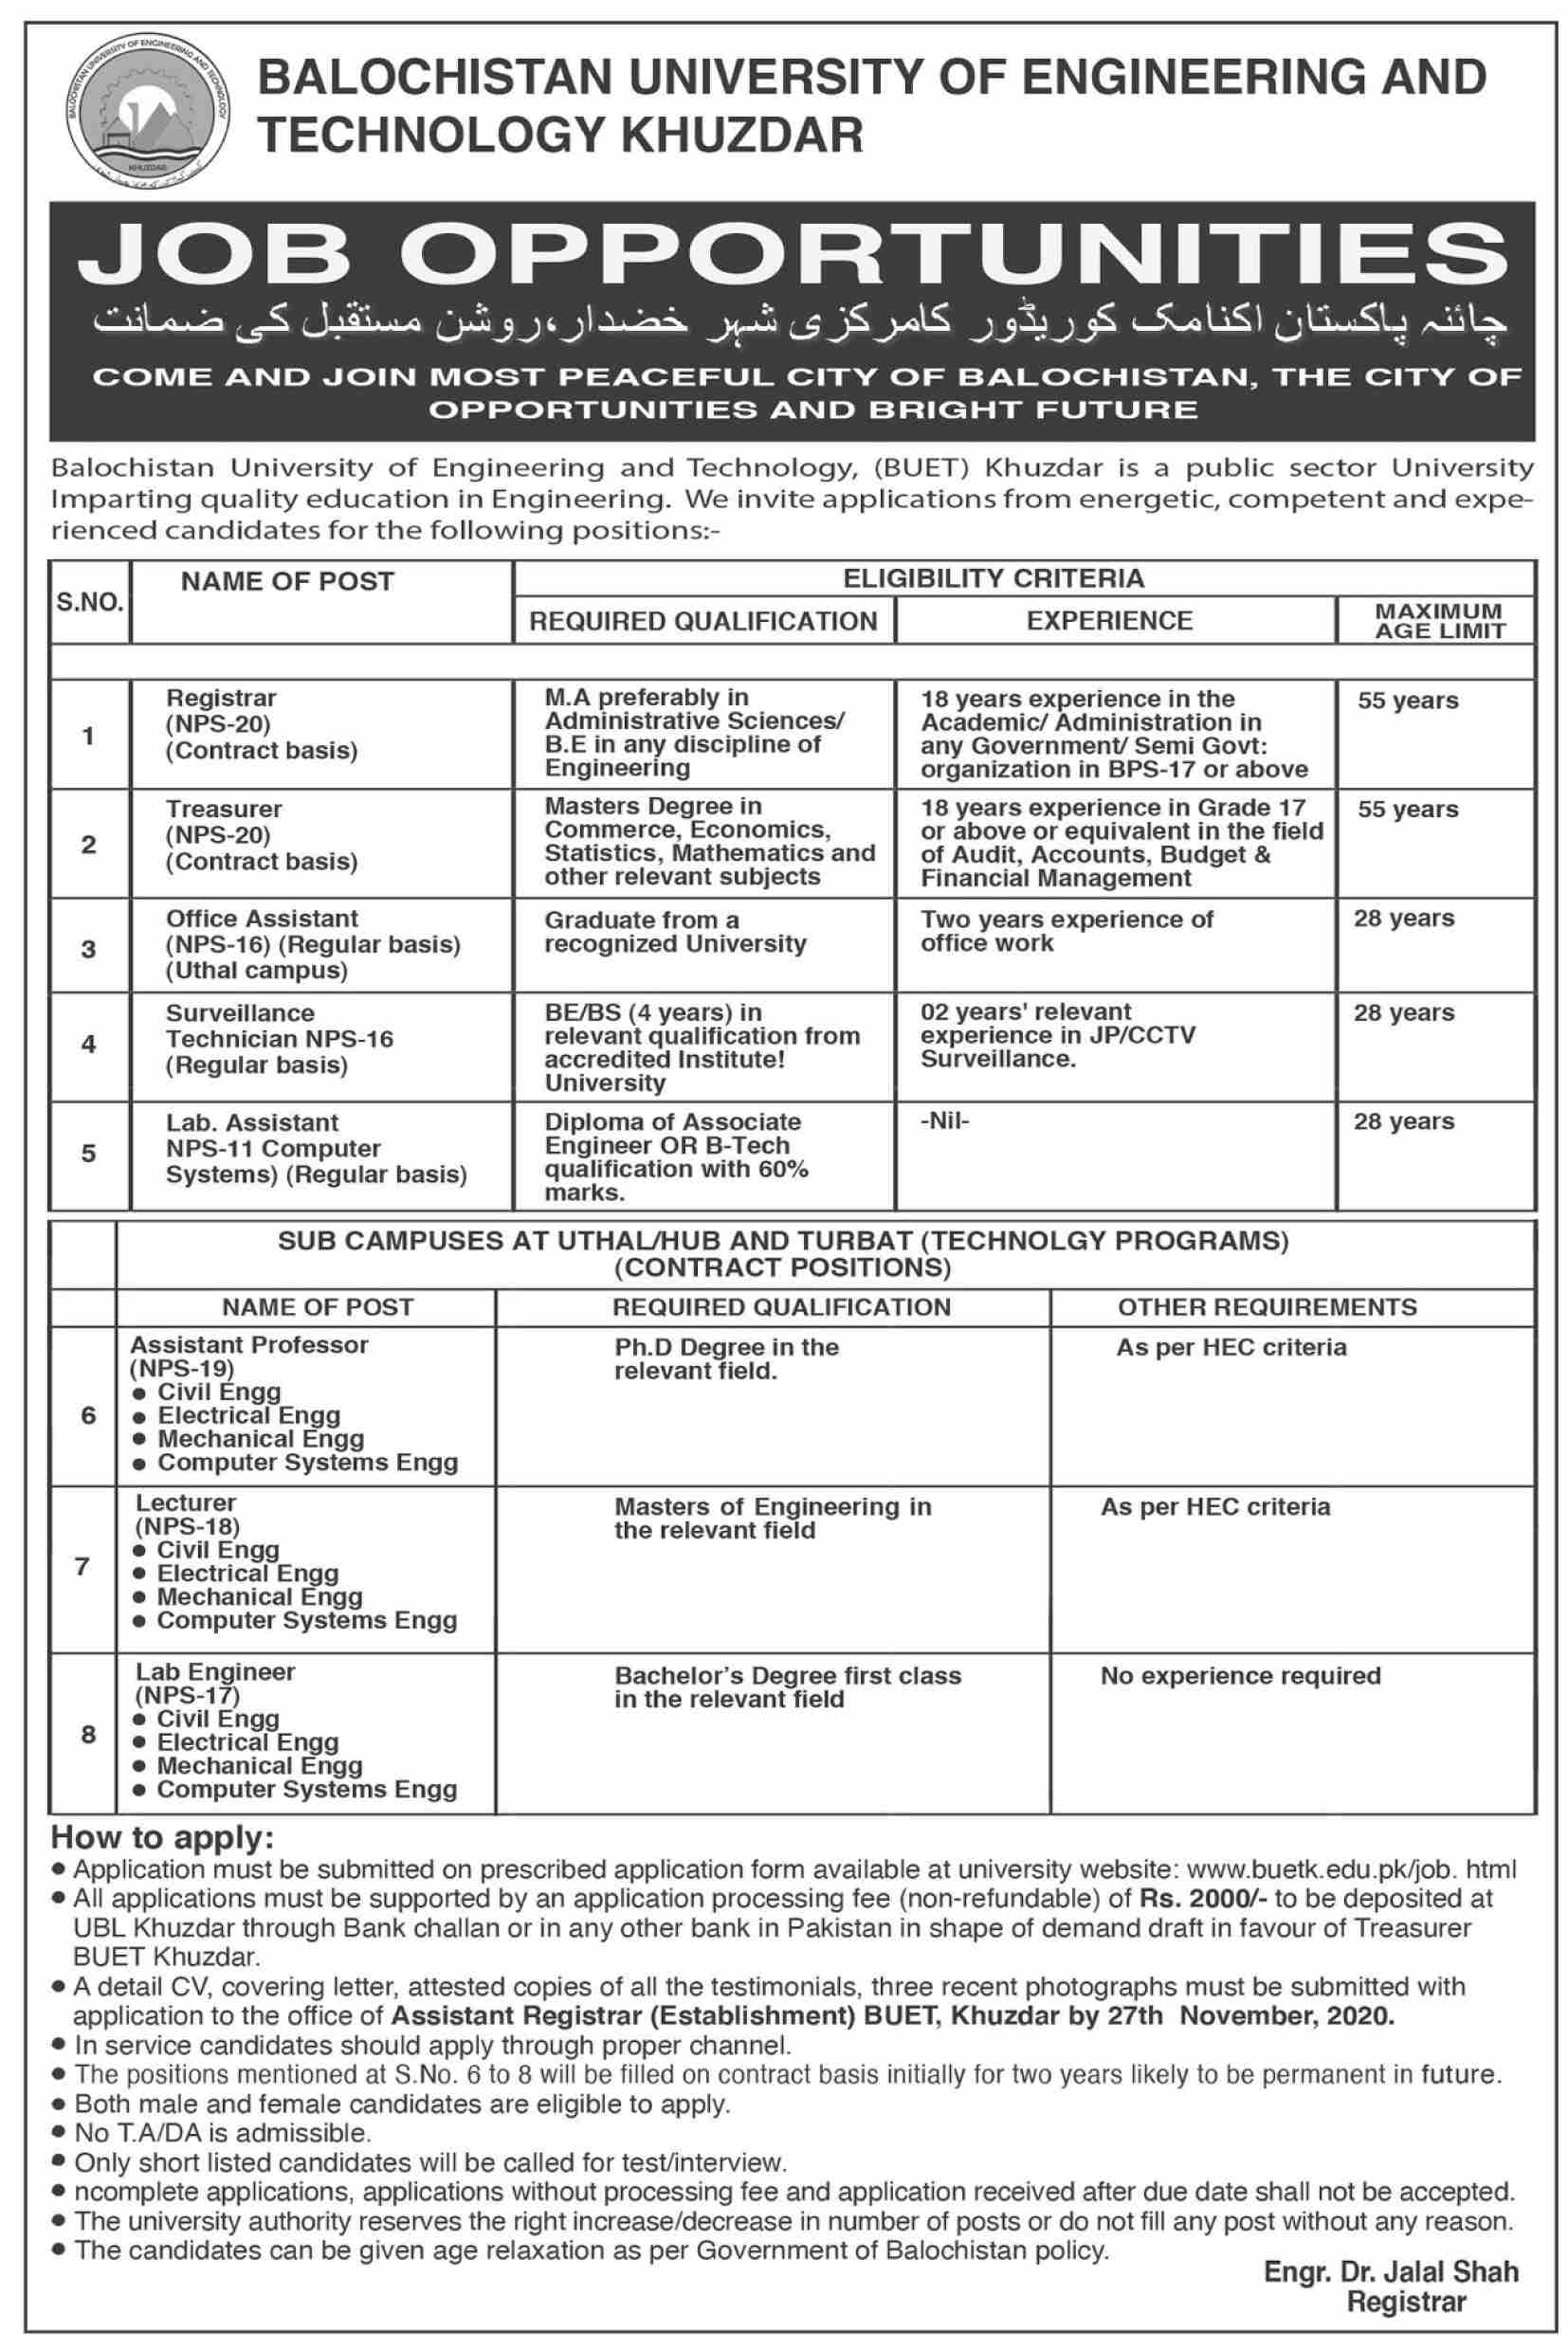 Balochistan University of Engineering and Technology Khuzdar Jobs November 2020